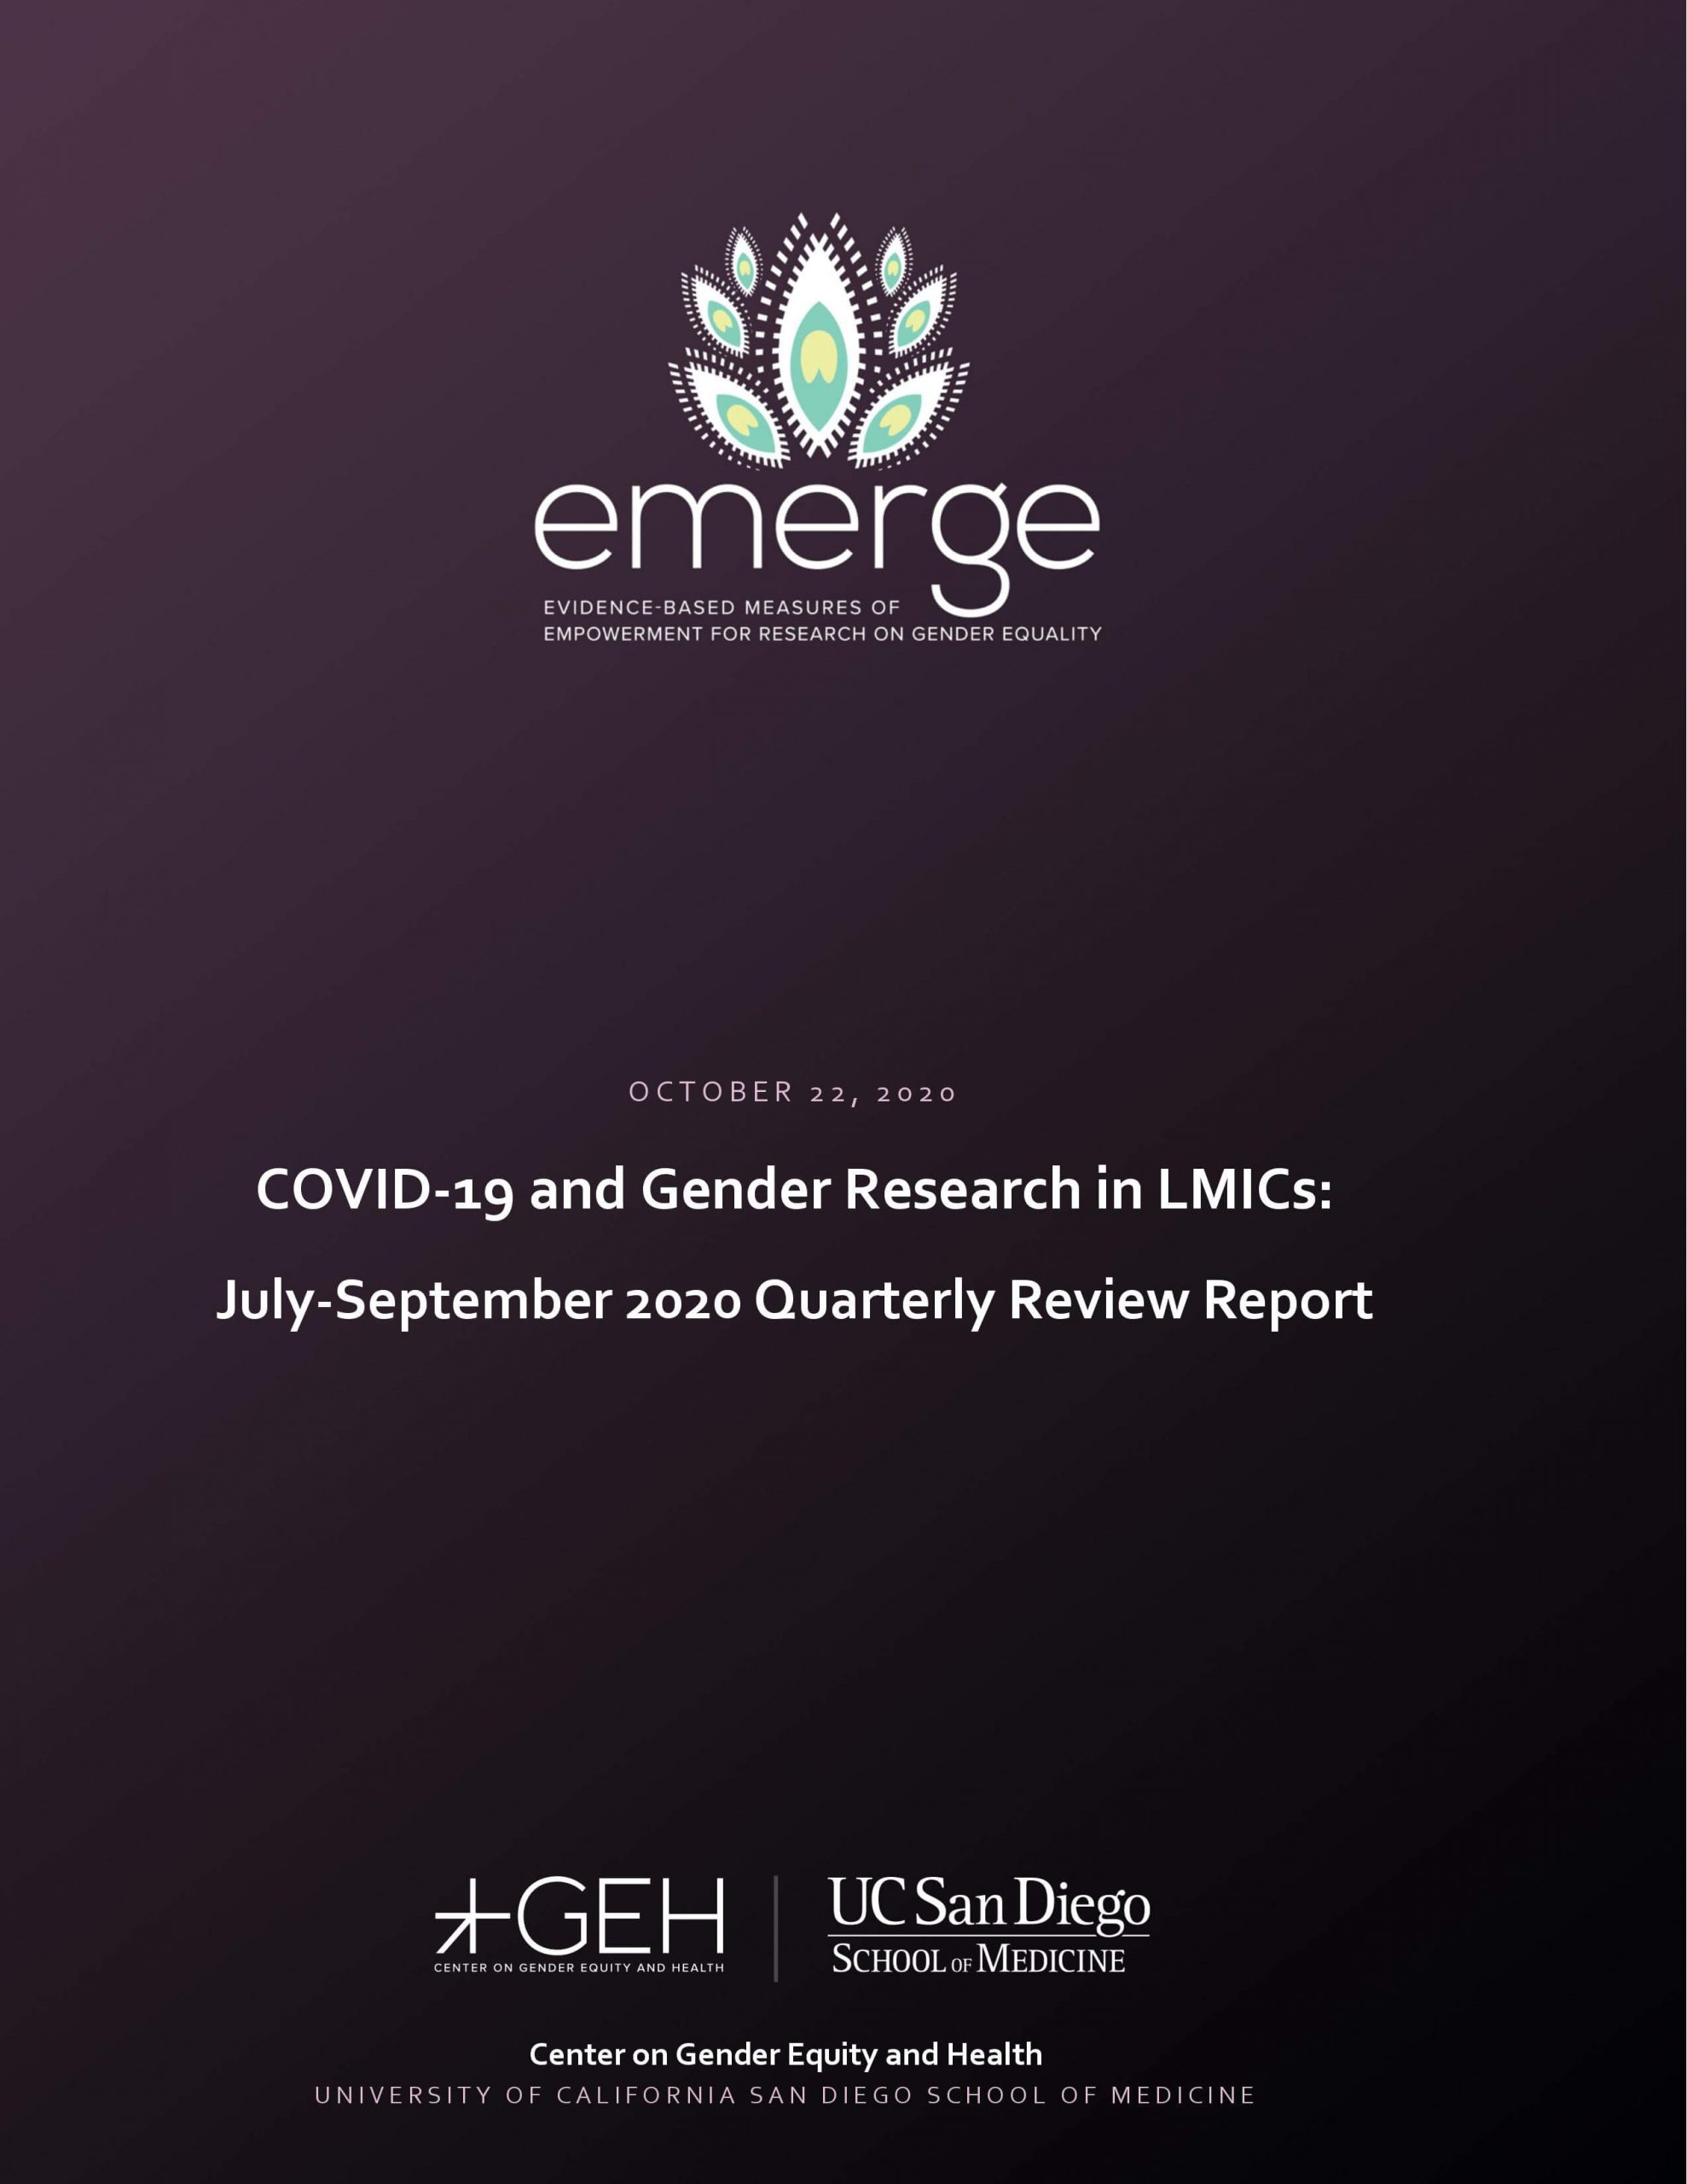 COVID-19 and Gender Research in LMICs